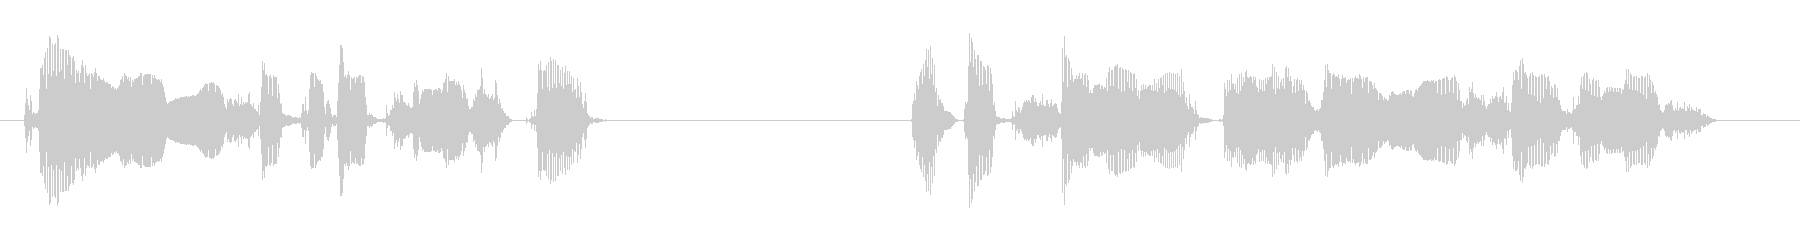 To customers prior to the start ~'s unreproduced waveform